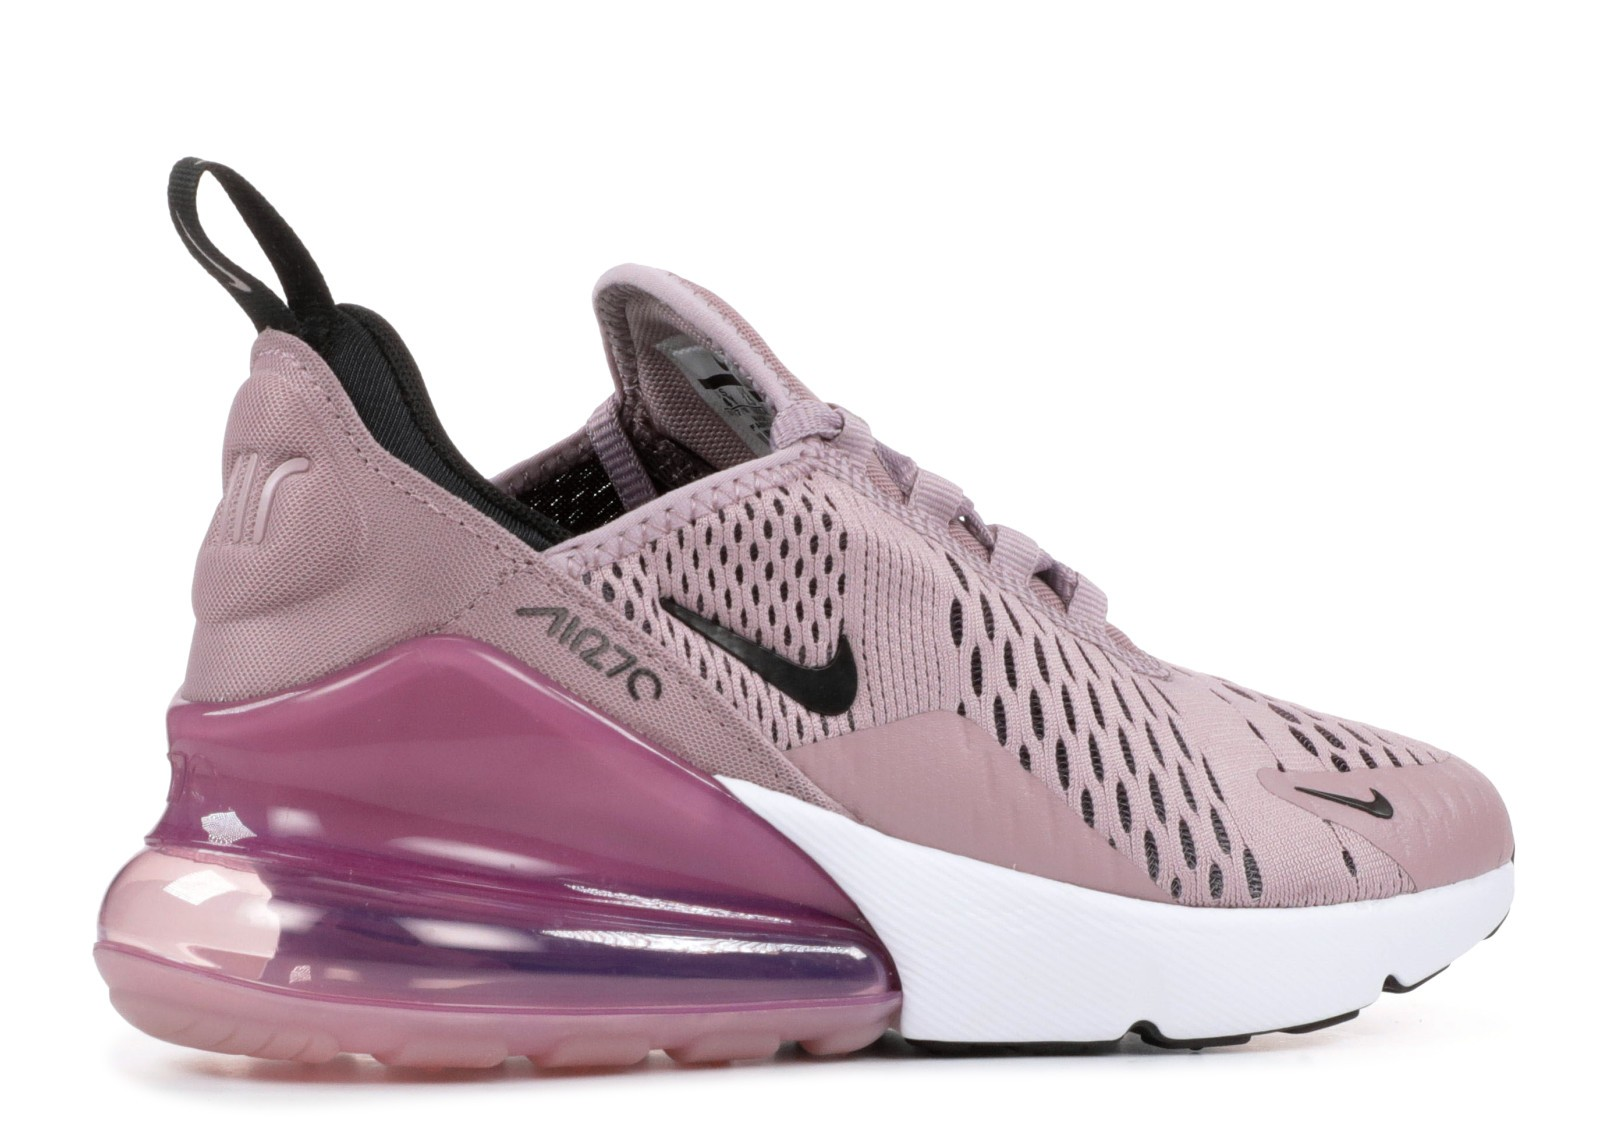 Nike Air Max 270 Gs Rose White Black Elemental 943345 601